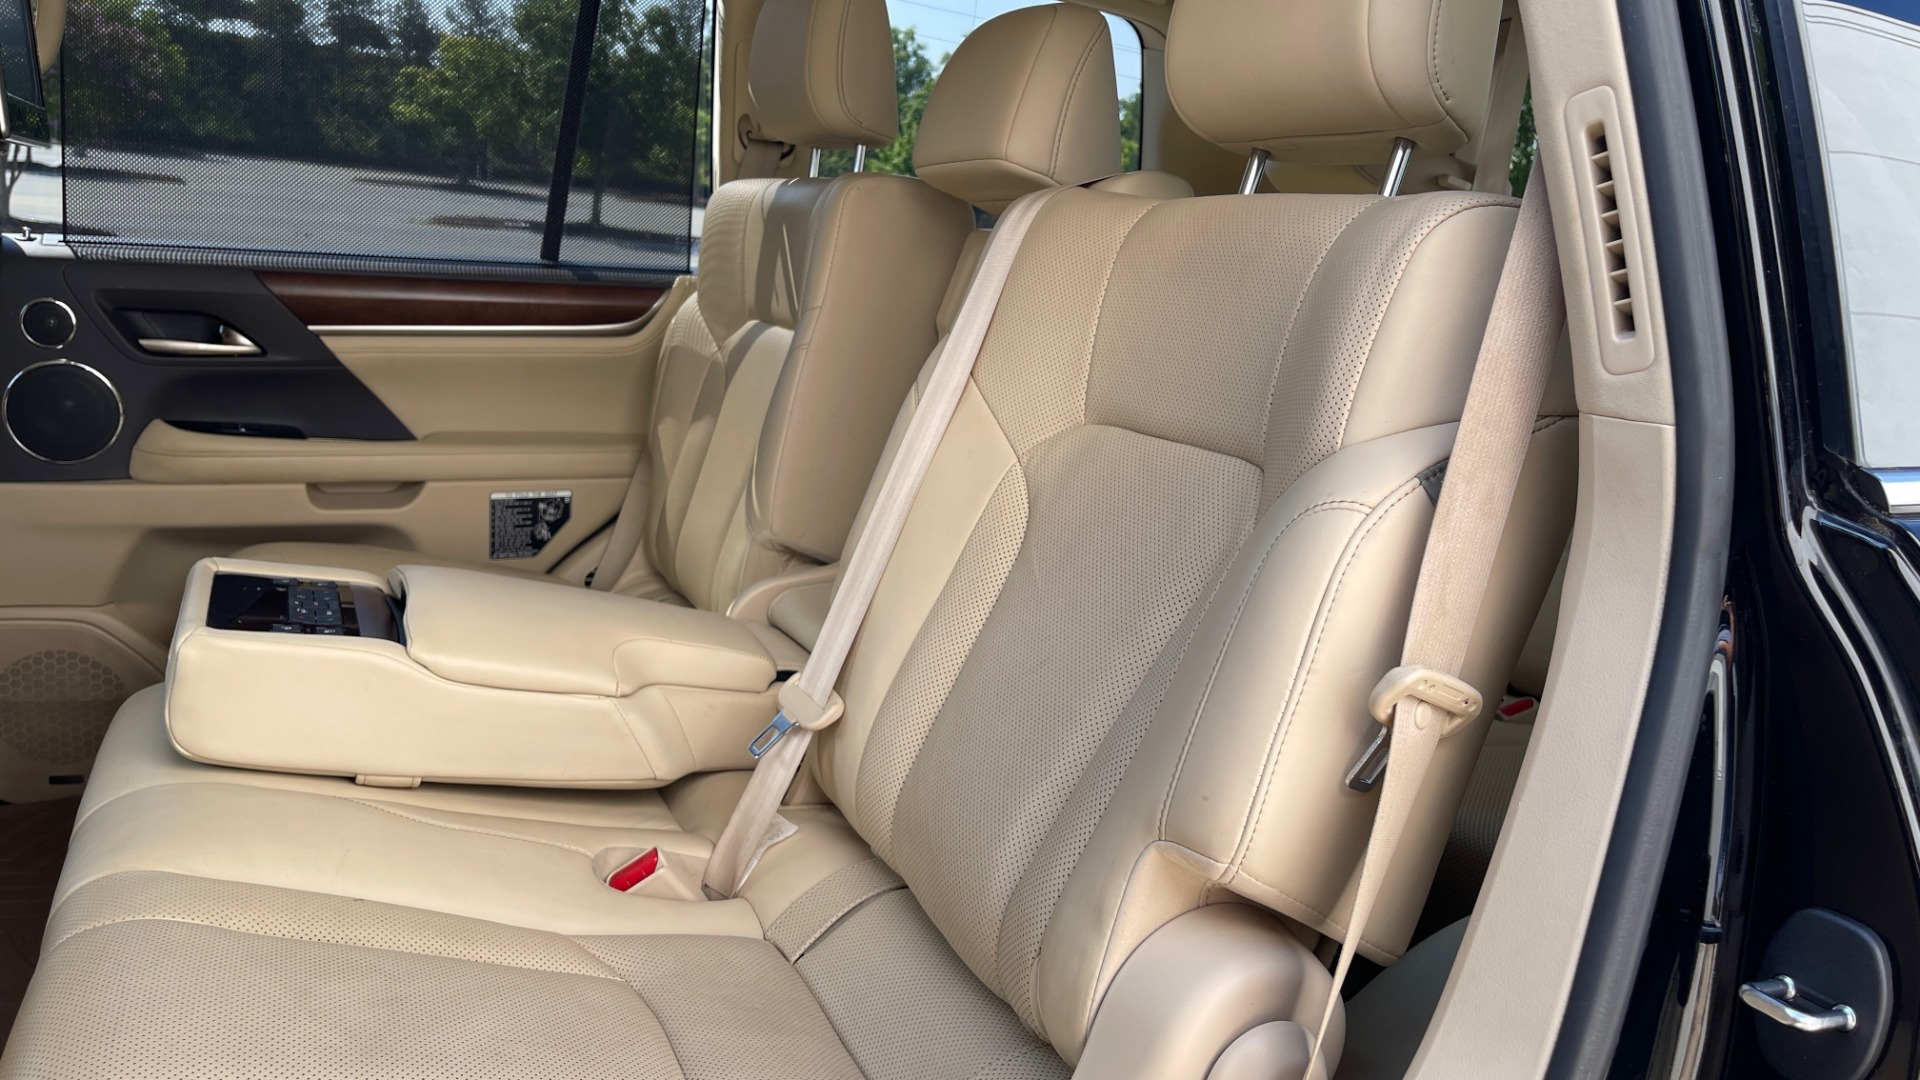 Used 2017 Lexus LX 570 LUXURY / 5.7L V8 / NAV / SUNROOF / 3-ROW / DVD / REARVIEW for sale $63,995 at Formula Imports in Charlotte NC 28227 55